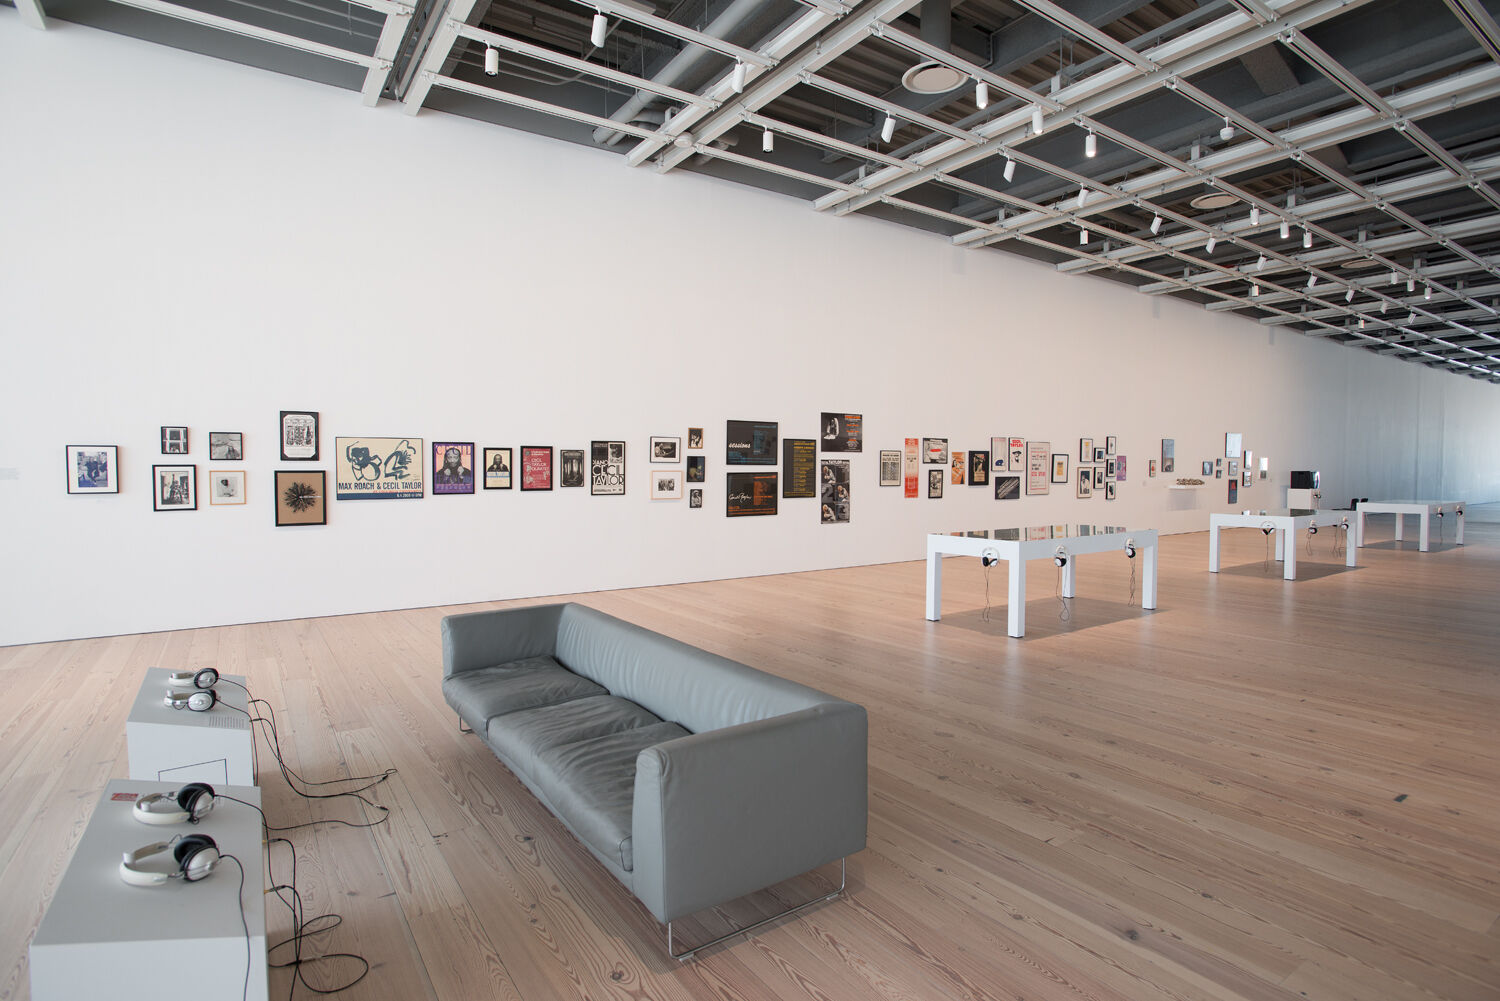 A gallery with a couch and art on the wall.